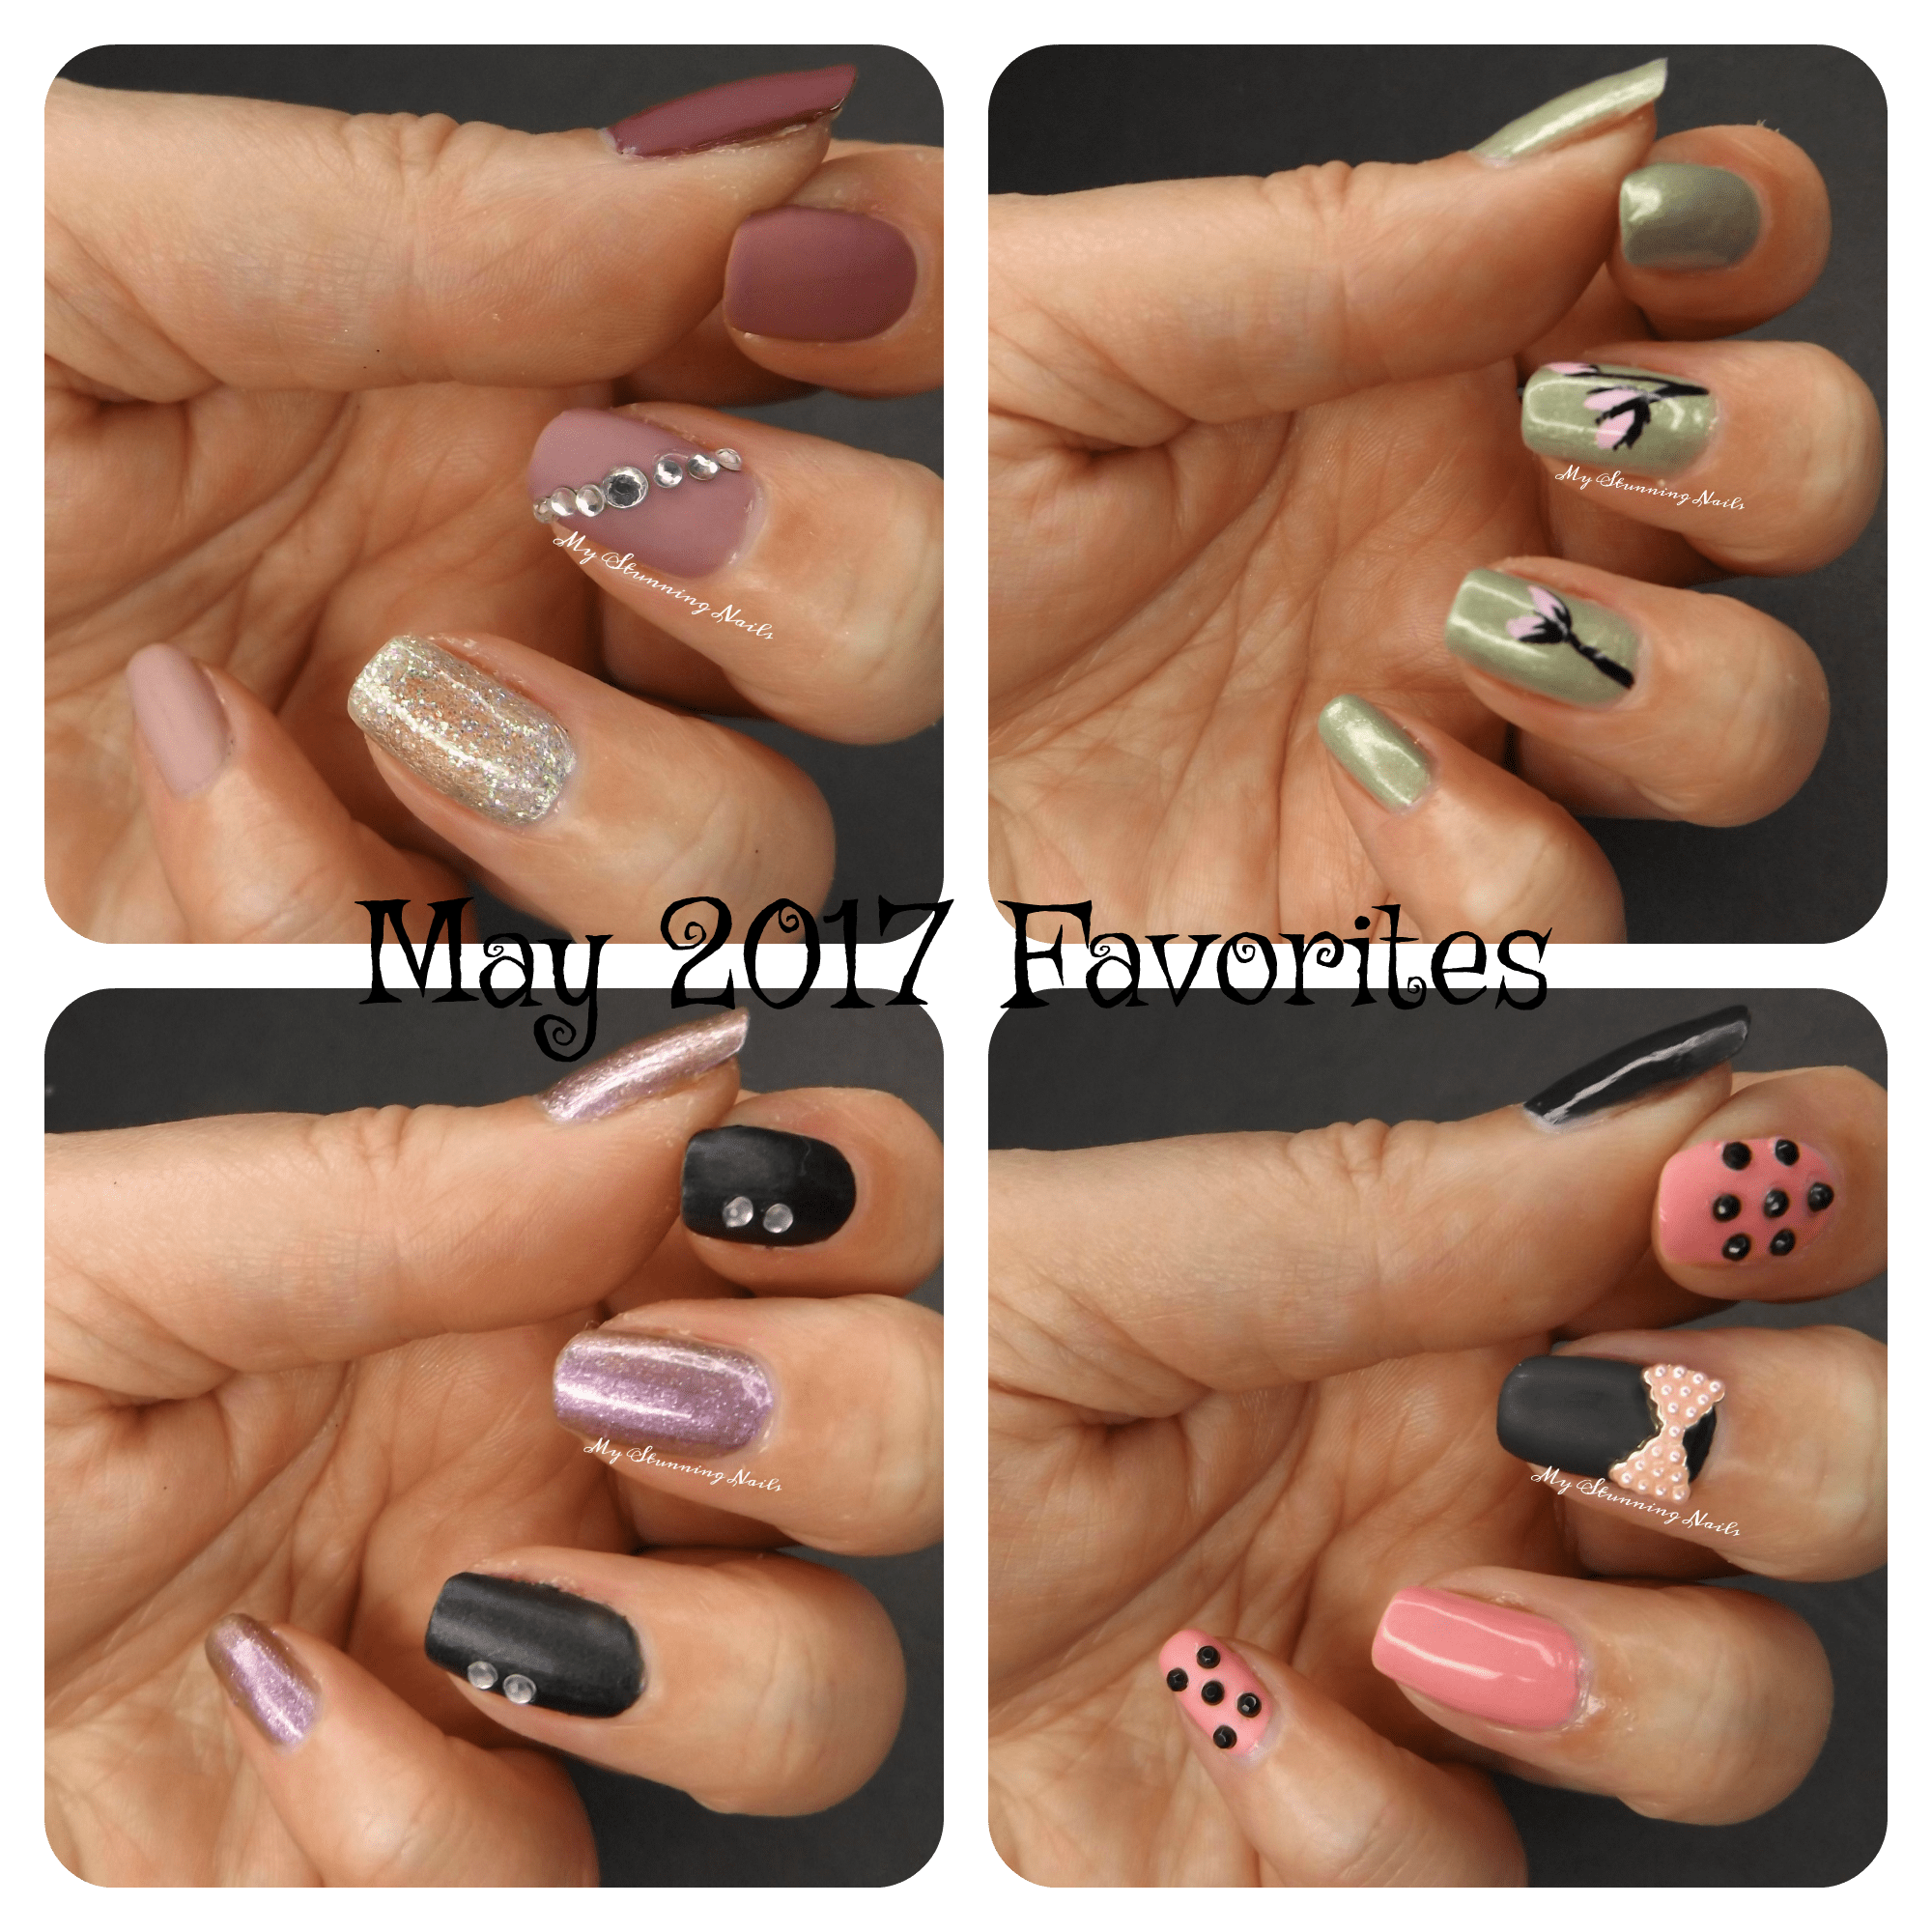 Skin clipart clean fingernail. Blog my stunning nails